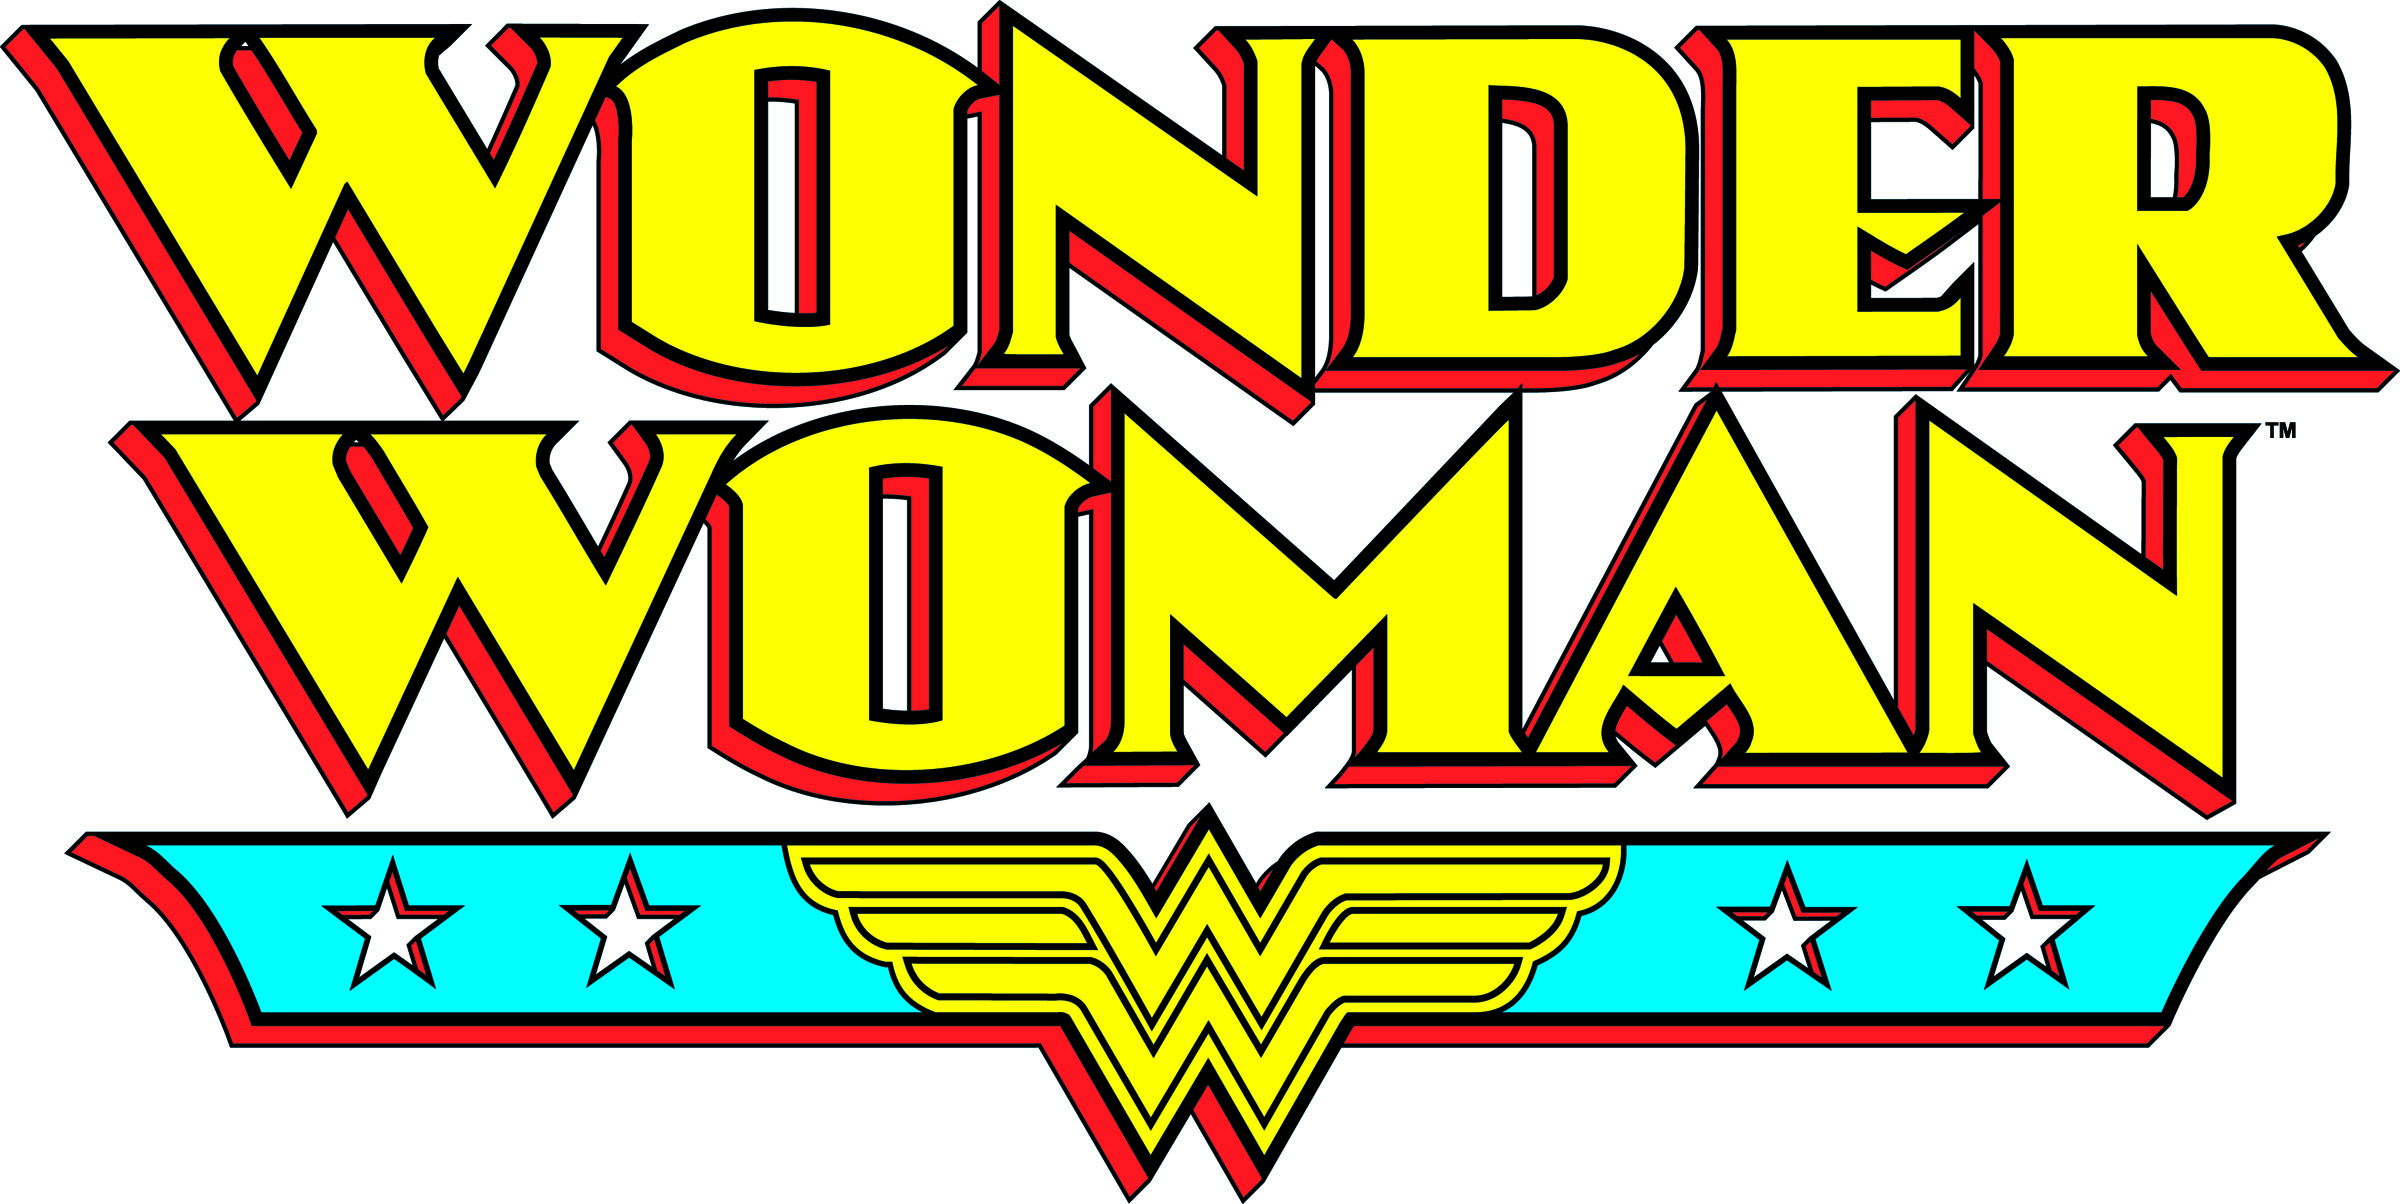 Wonder woman clipart wallpaper clipground wonder woman logo wallpaper pronofoot35fo Image collections